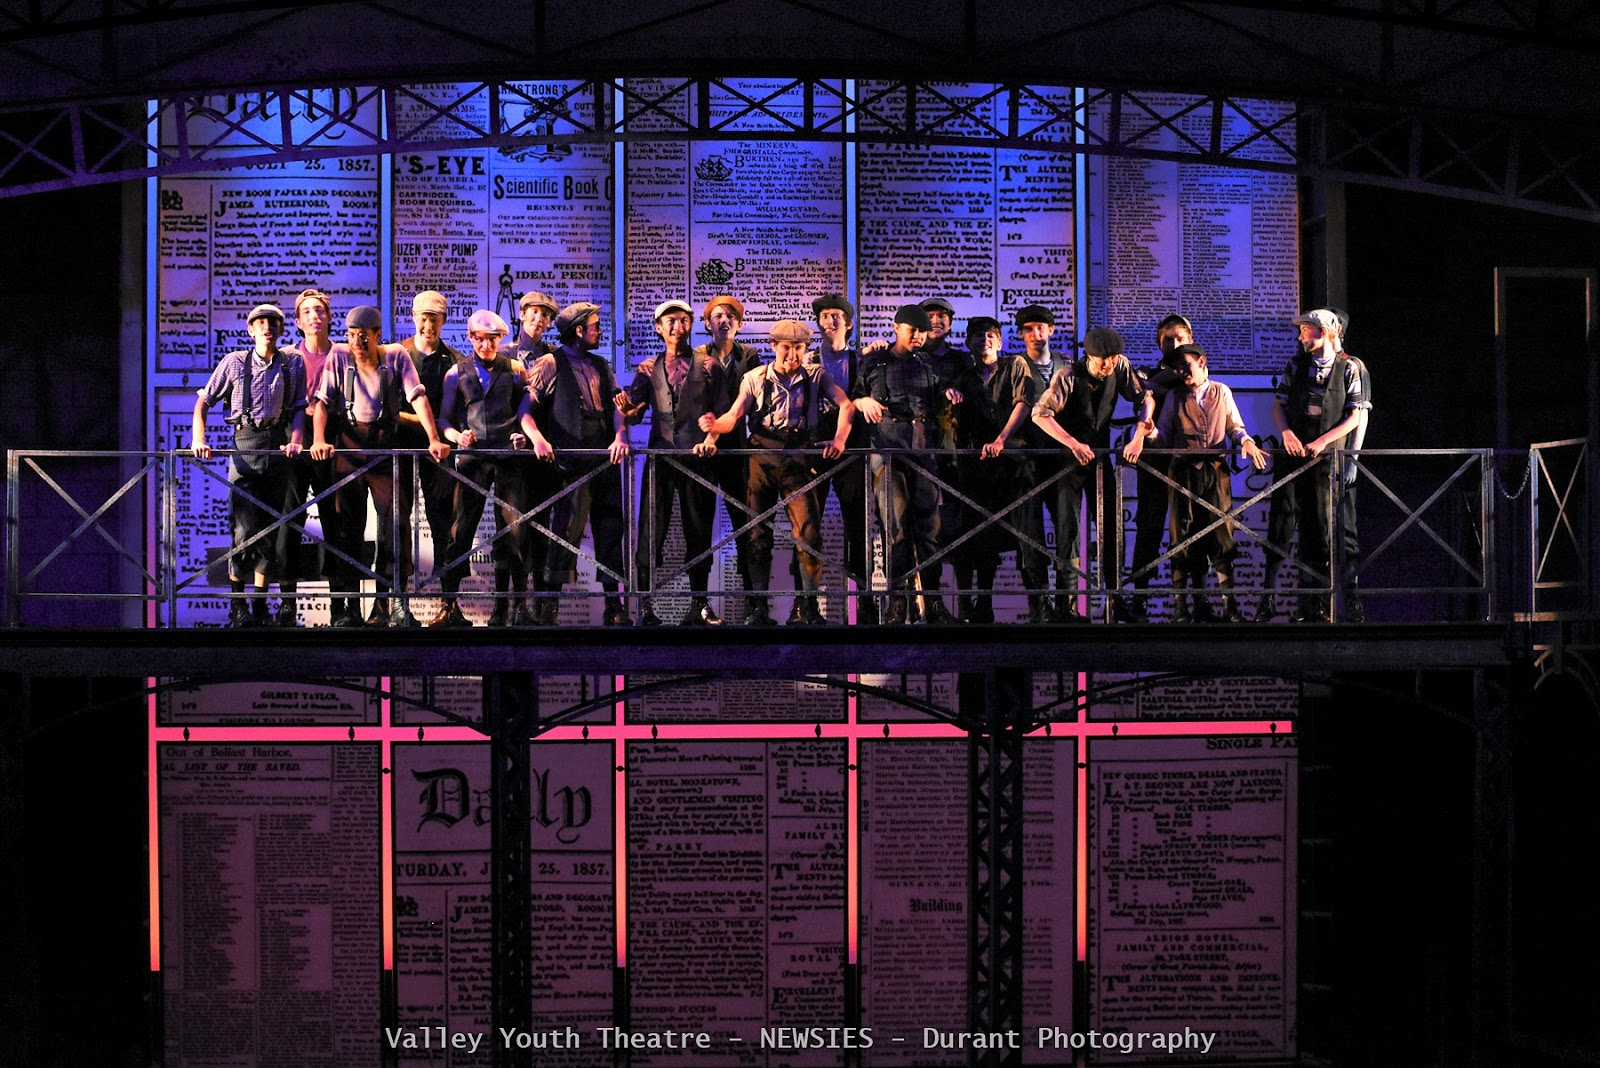 VYT-Newsies-selections-19.jpg